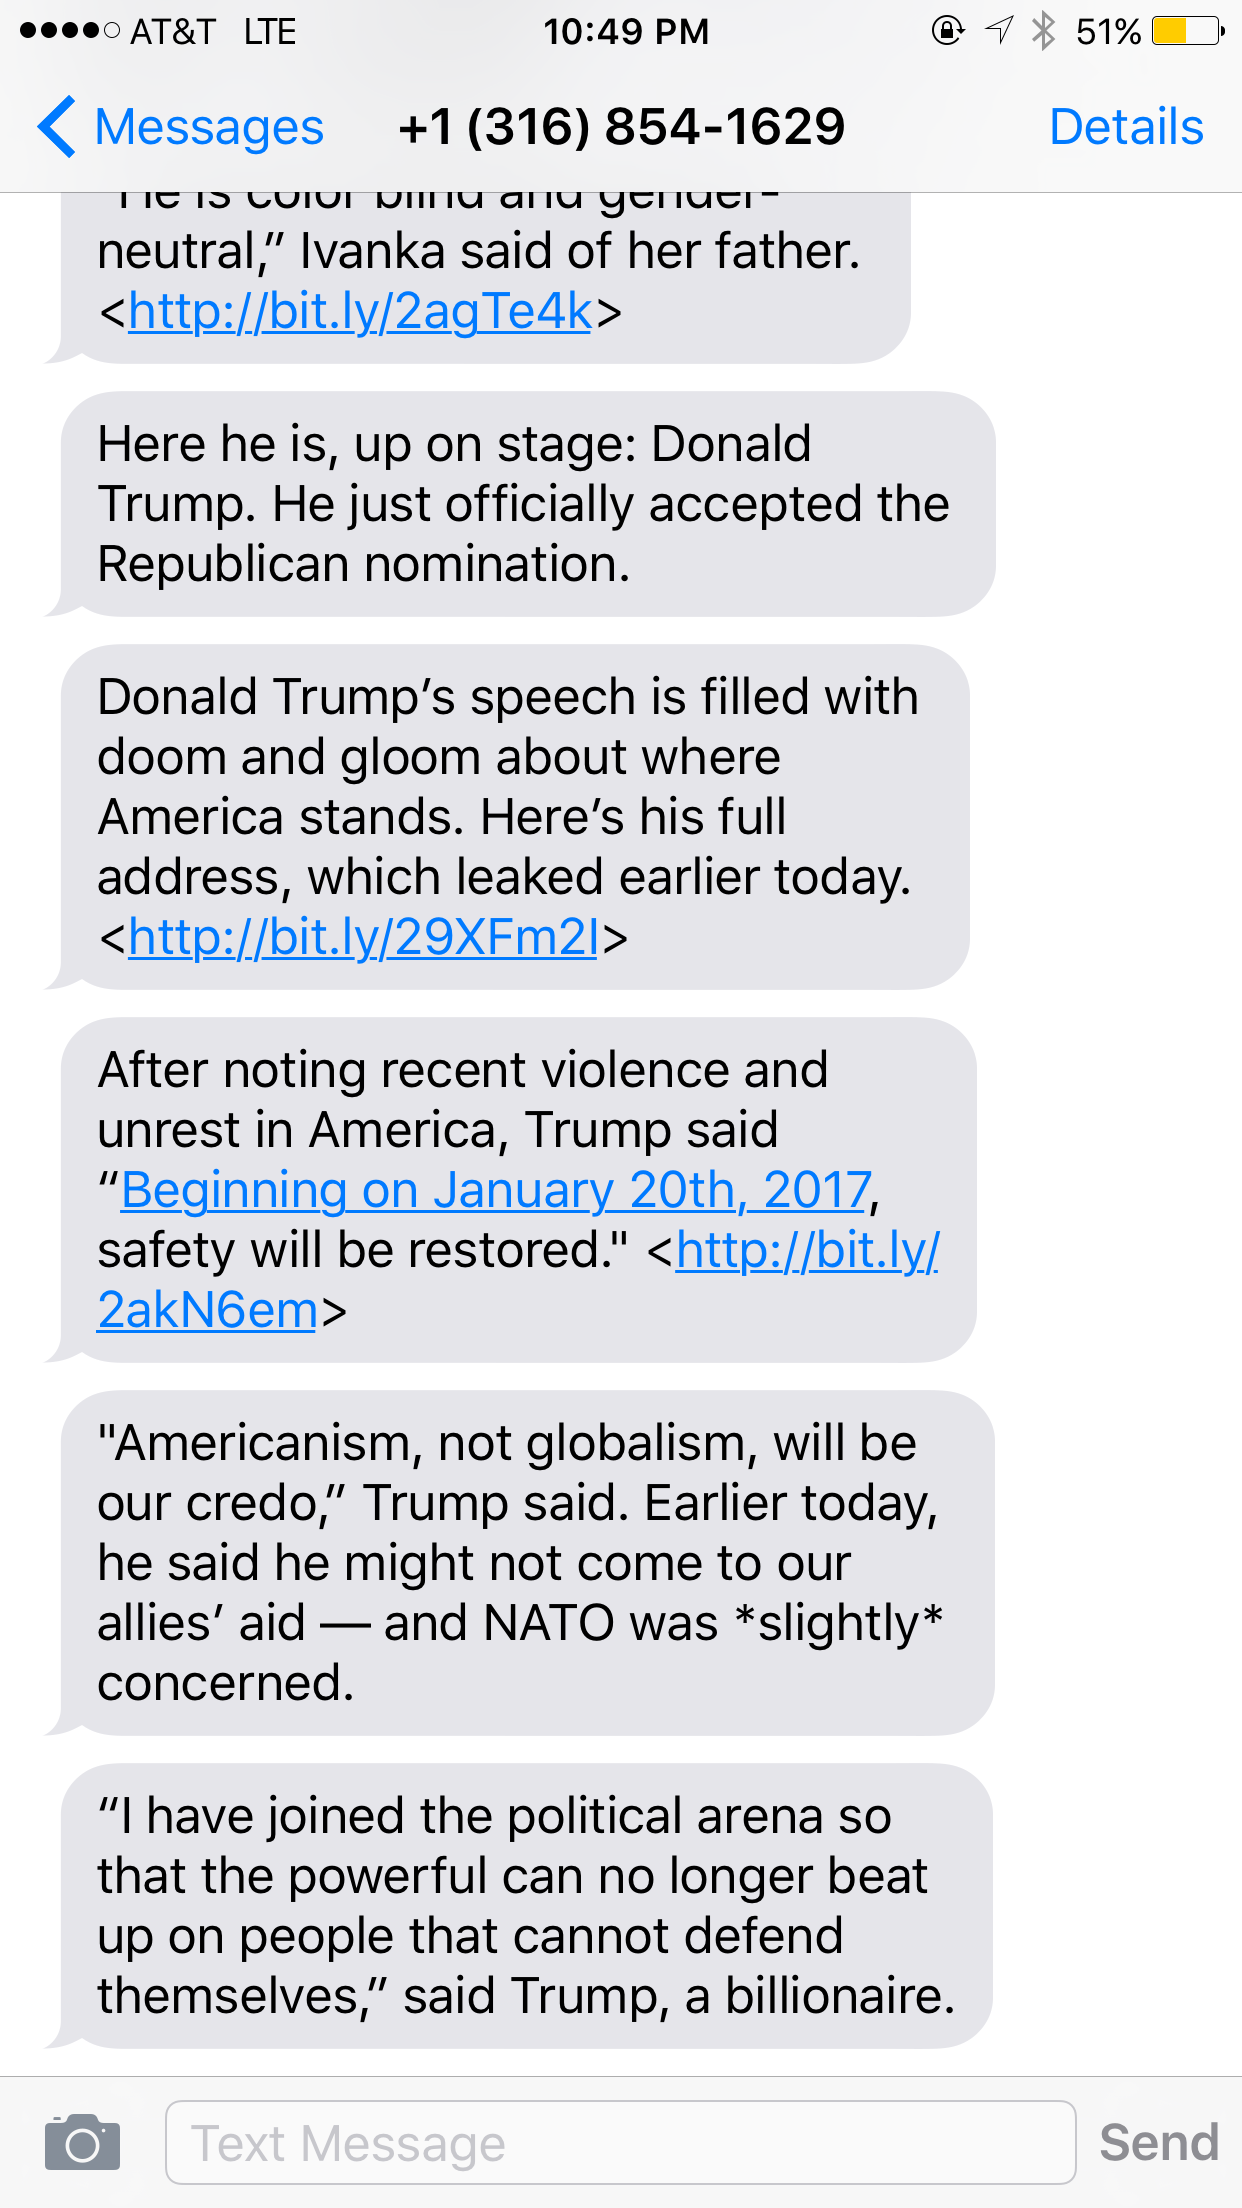 Mic used text messaging during the Republican National